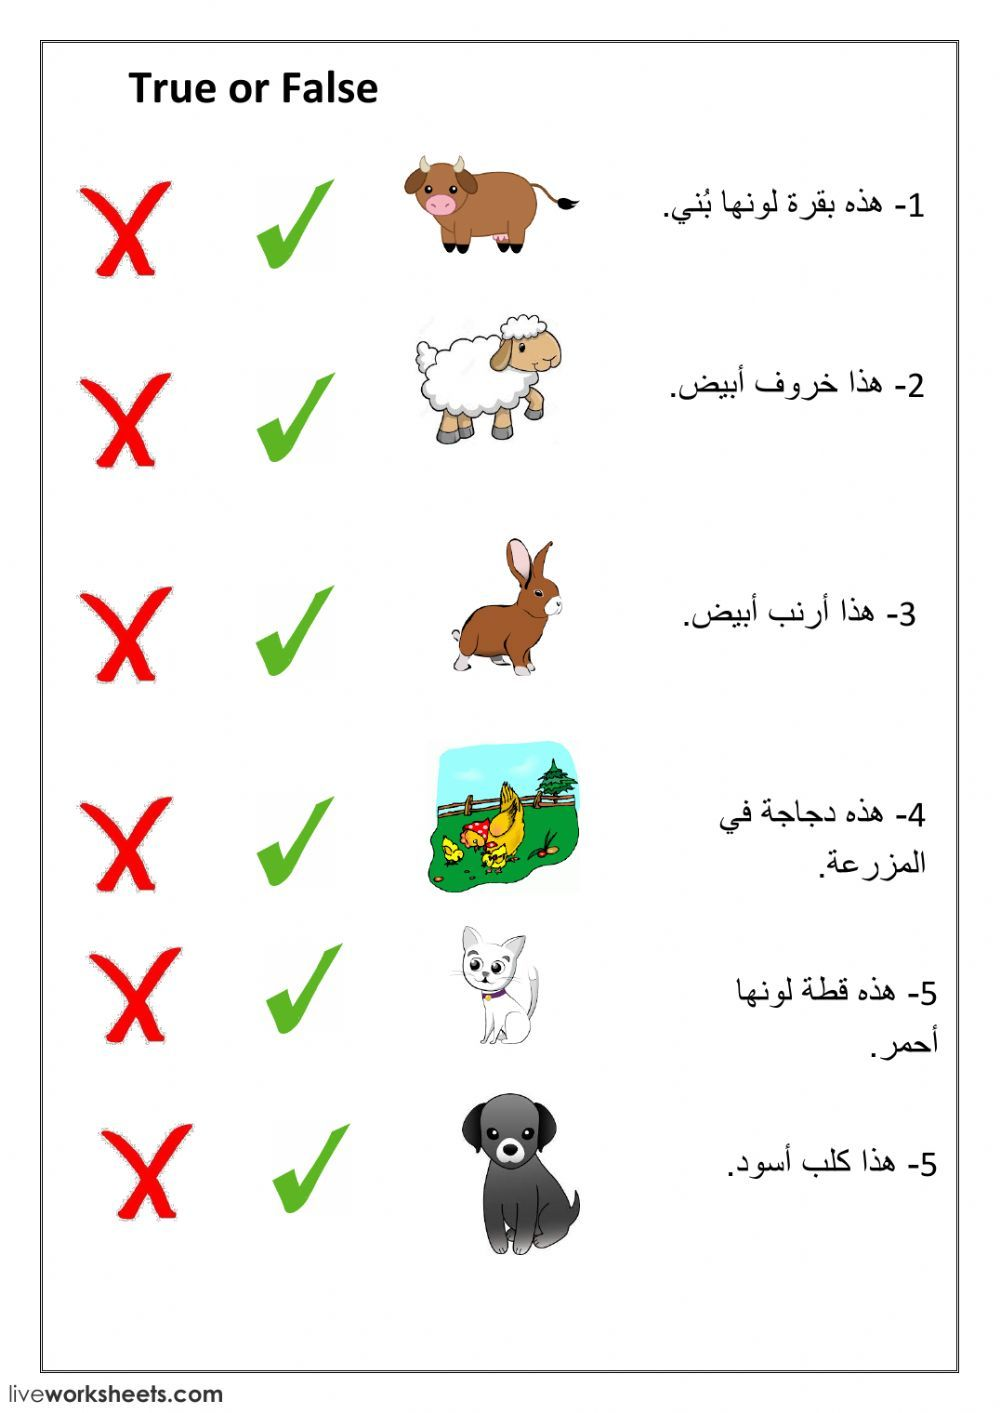 Reading Skill Interactive And Downloadable Worksheet You Can Do The Exercises Online Or Downloa Kindergarten Reading Activities Alphabet Preschool Arabic Kids